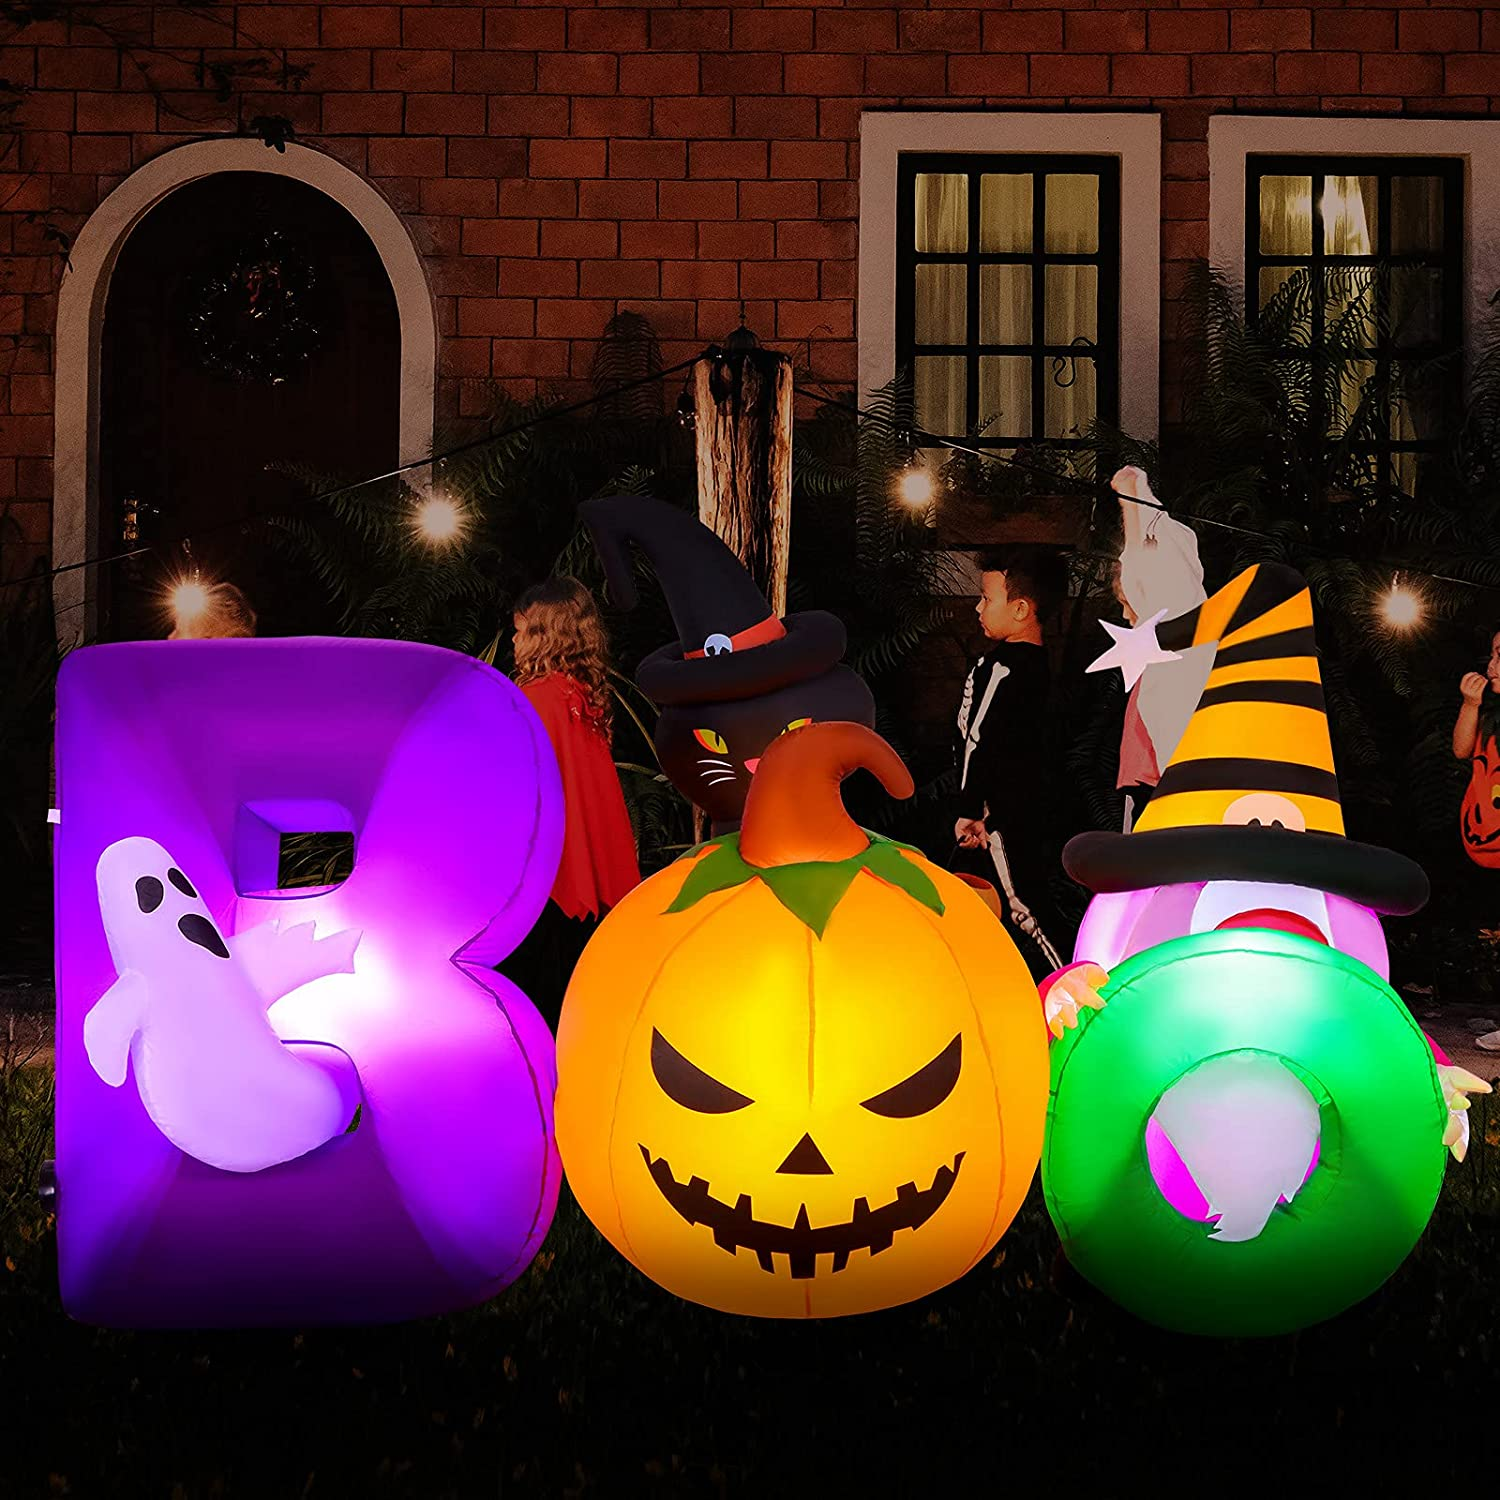 Fovths 7 Feet Halloween Inflatables Boo Blow Up Decoration Pumpkin and Ghost LED Light Up Halloween Decoration for Outdoor Indoor Garden Yard